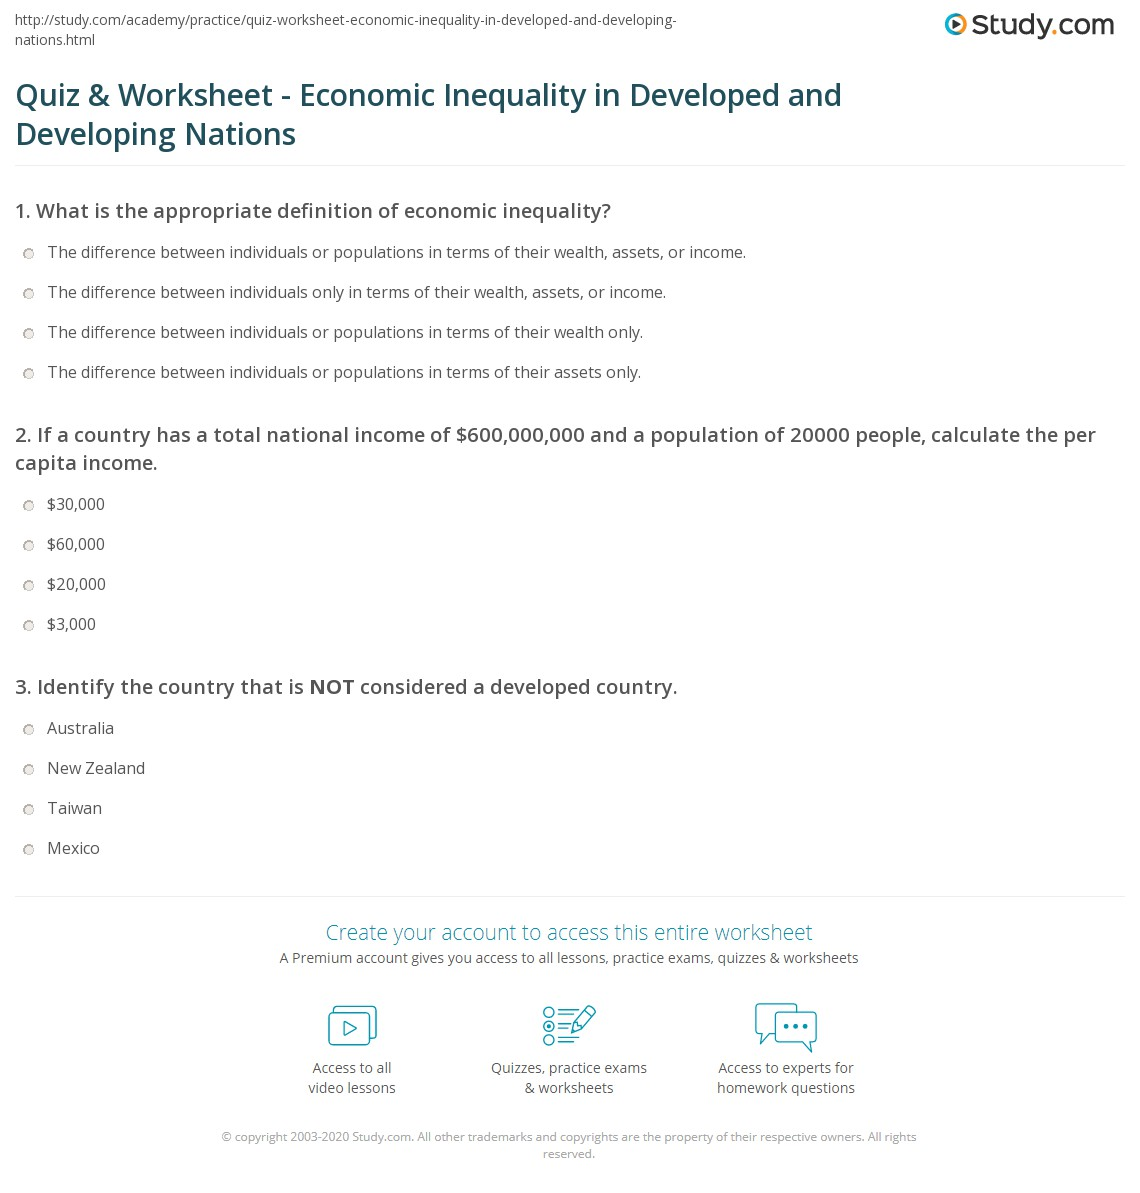 quiz worksheet economic inequality in developed and developing nations. Black Bedroom Furniture Sets. Home Design Ideas